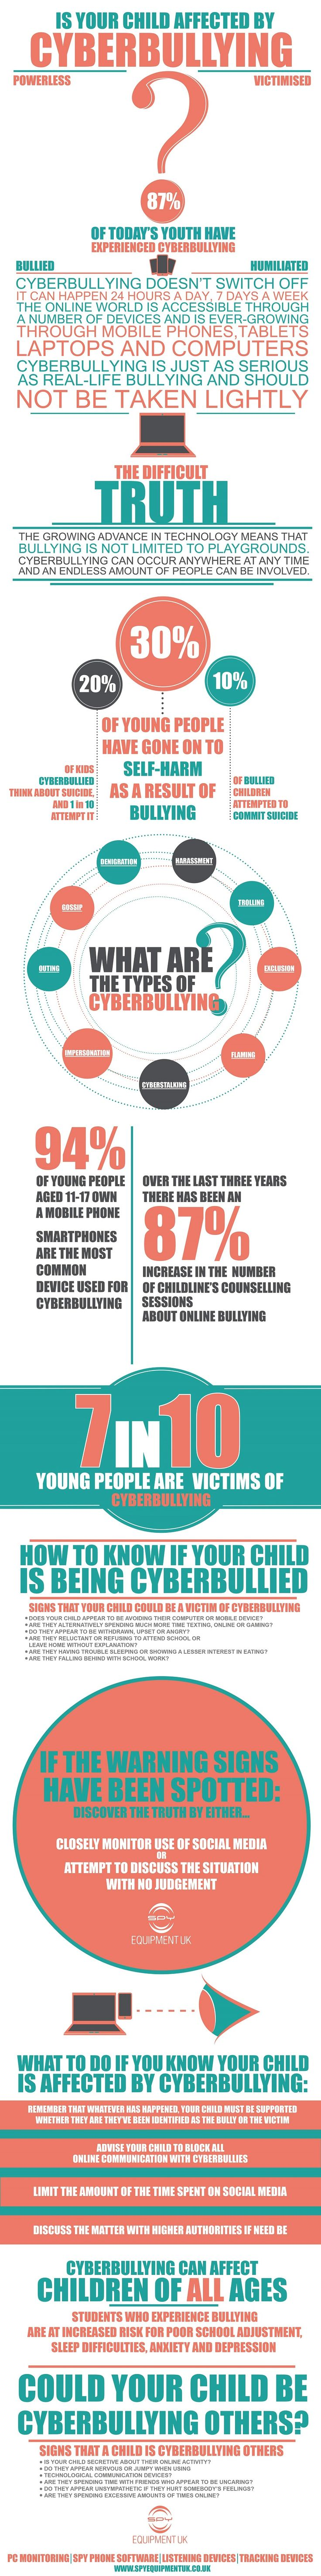 Is Your Child Being Bullied Online? Infographic